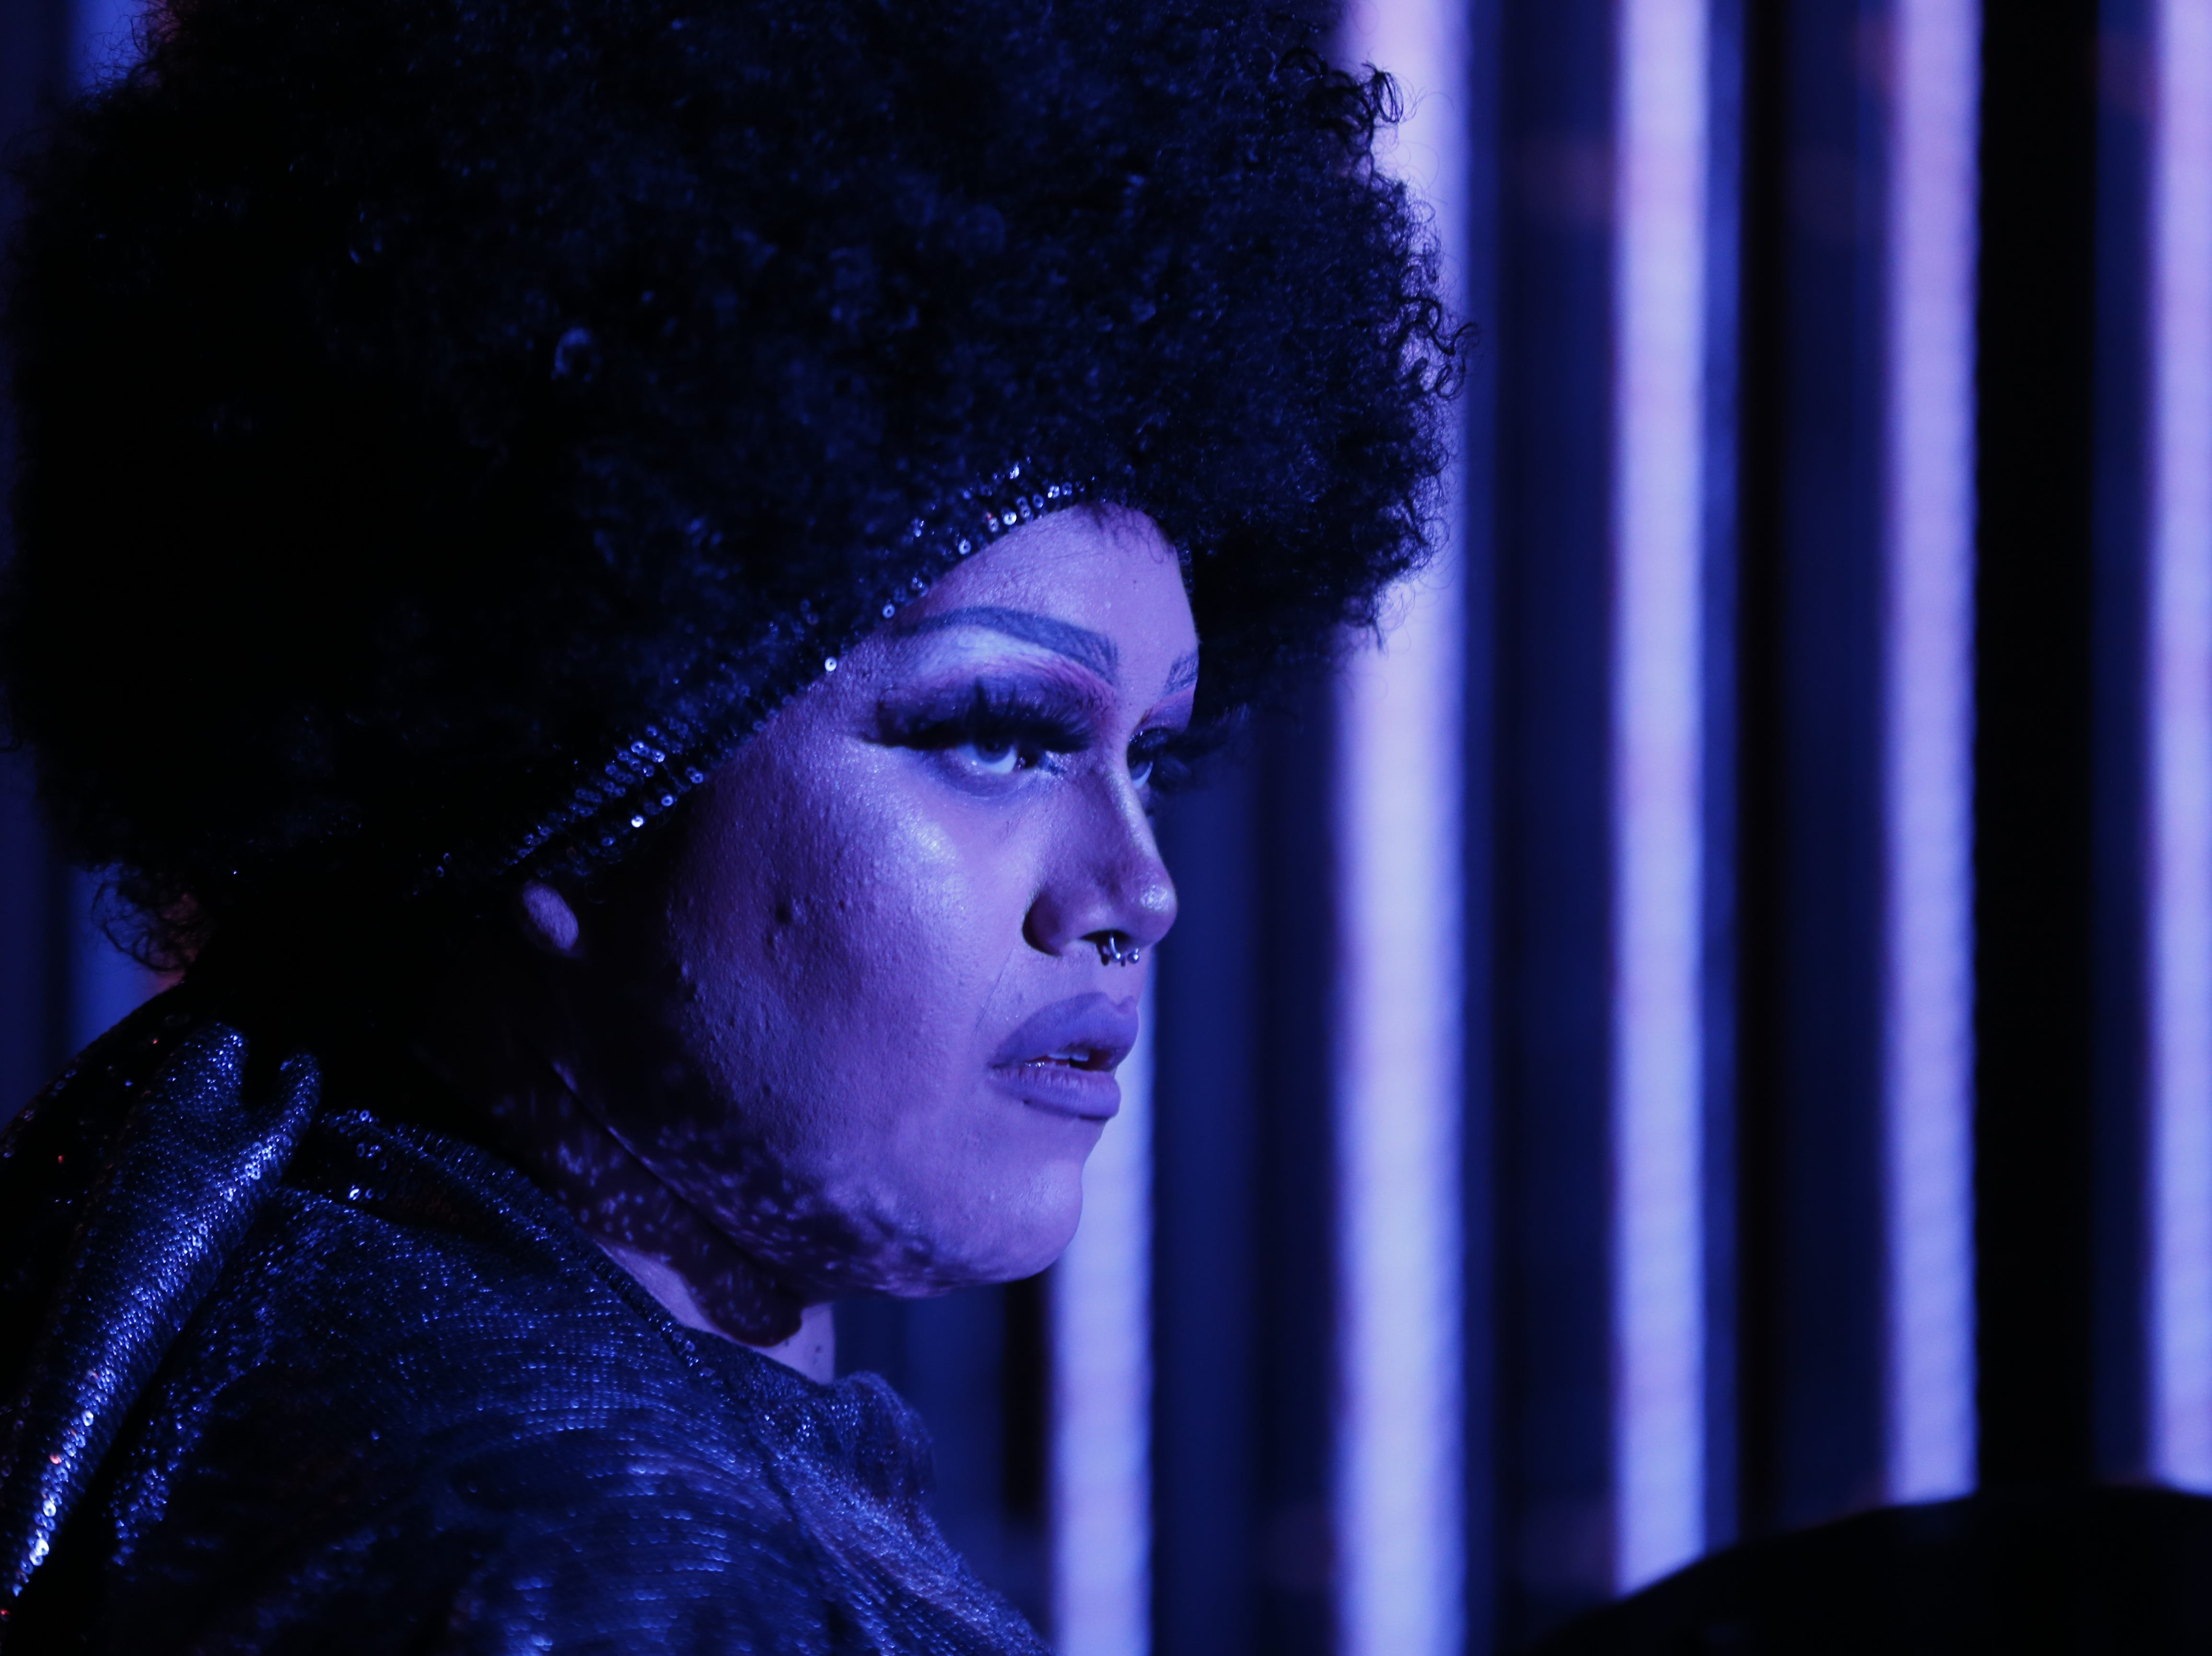 Isis D.Frost watches from backstage for as she waits for her performance during the Miss Gay Arizona America pageant 2019 at Tempe Center for the Arts on May 11, 2019.